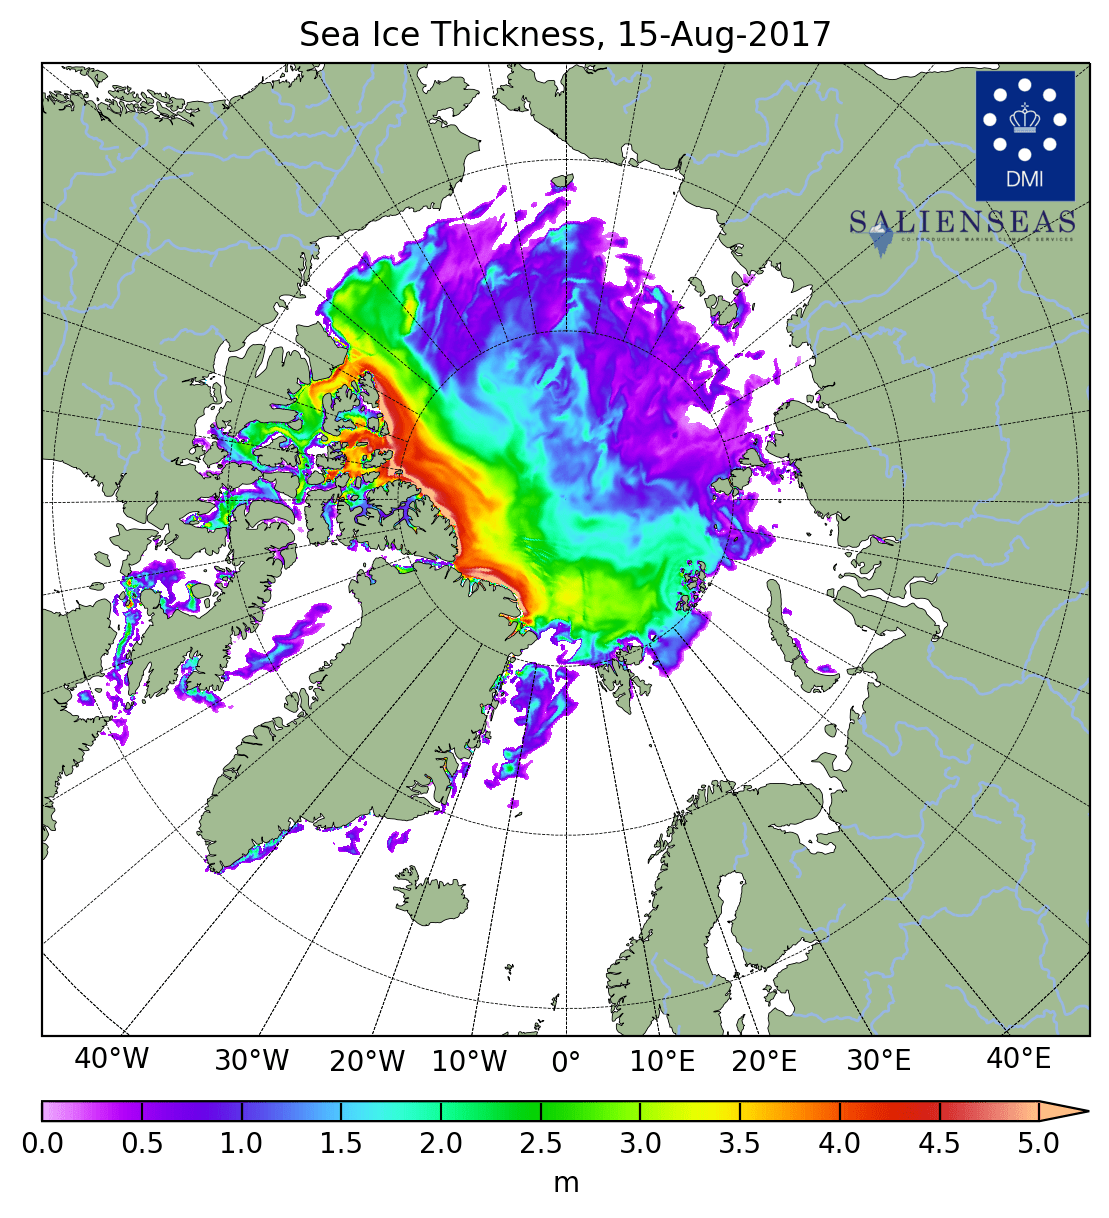 https://i2.wp.com/polarportal.dk/fileadmin/polarportal/sea/CICE_map_thick_LA_EN_20170815.png